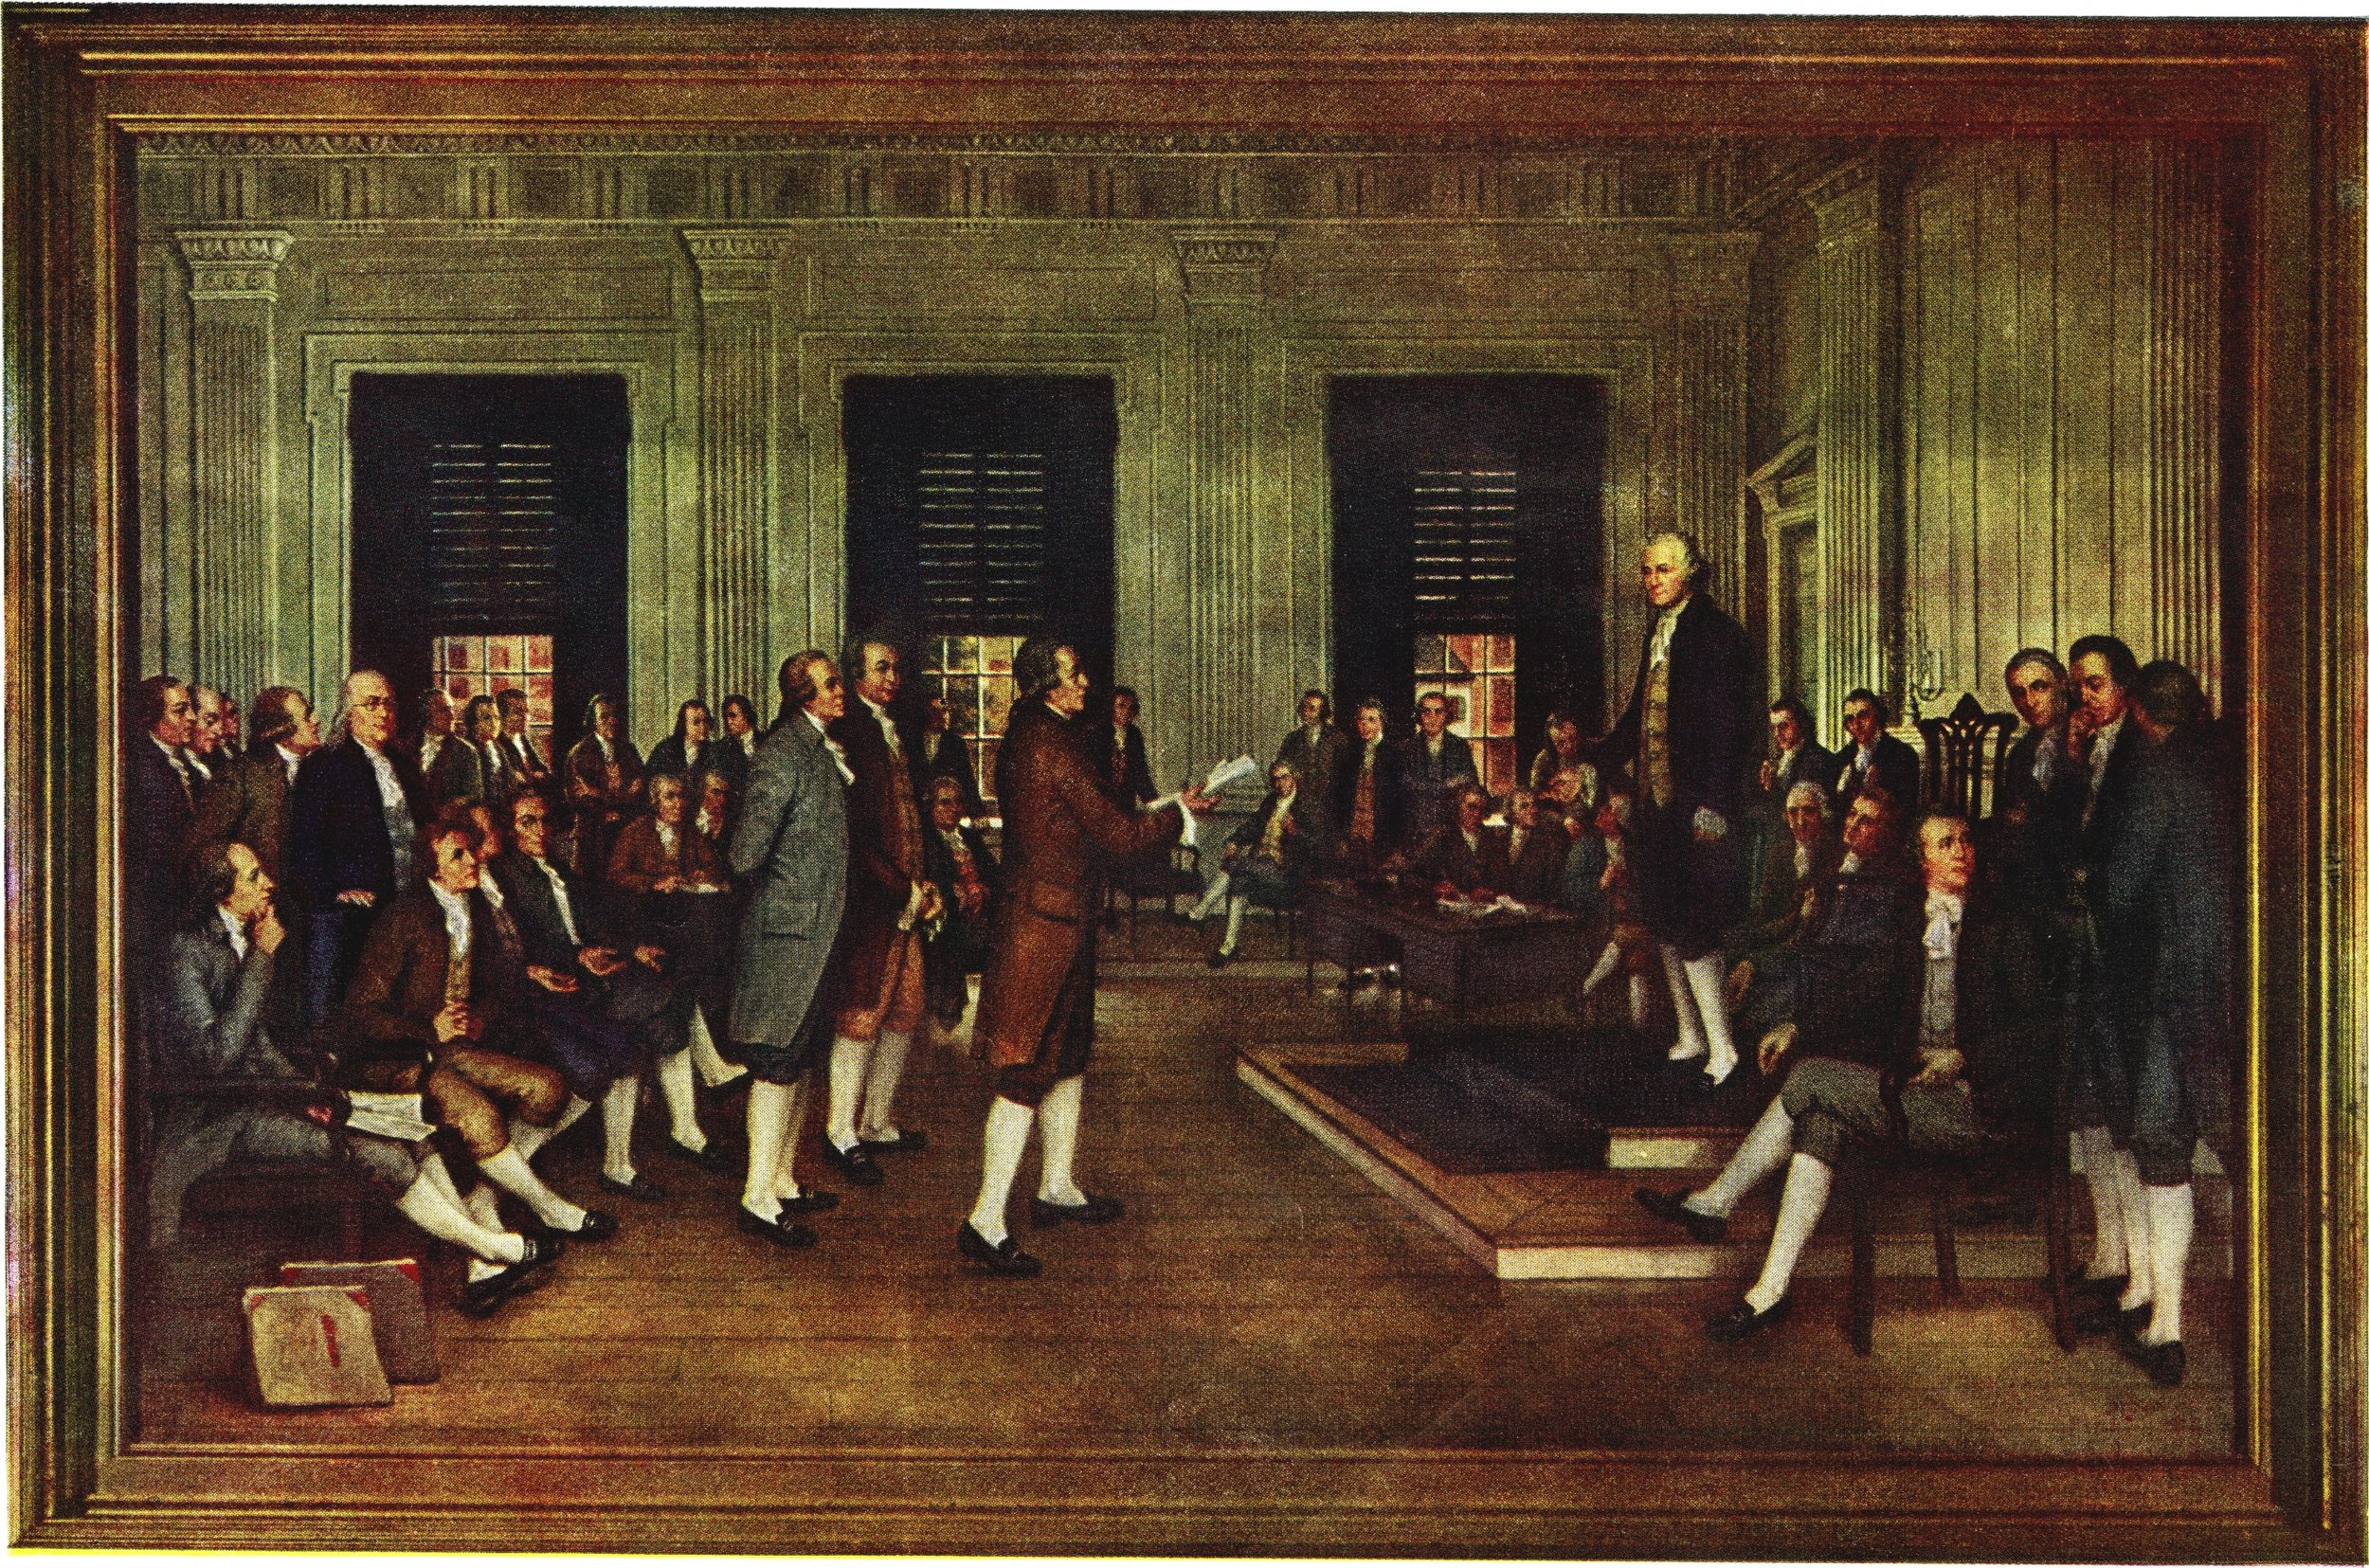 'The_Adoption_of_the_U.S._Constitution_in_Congress_at_Independence_Hall,_Philadelphia,_Sept._17,_1787'_(1935),_by_John_H._Froehlich.jpg